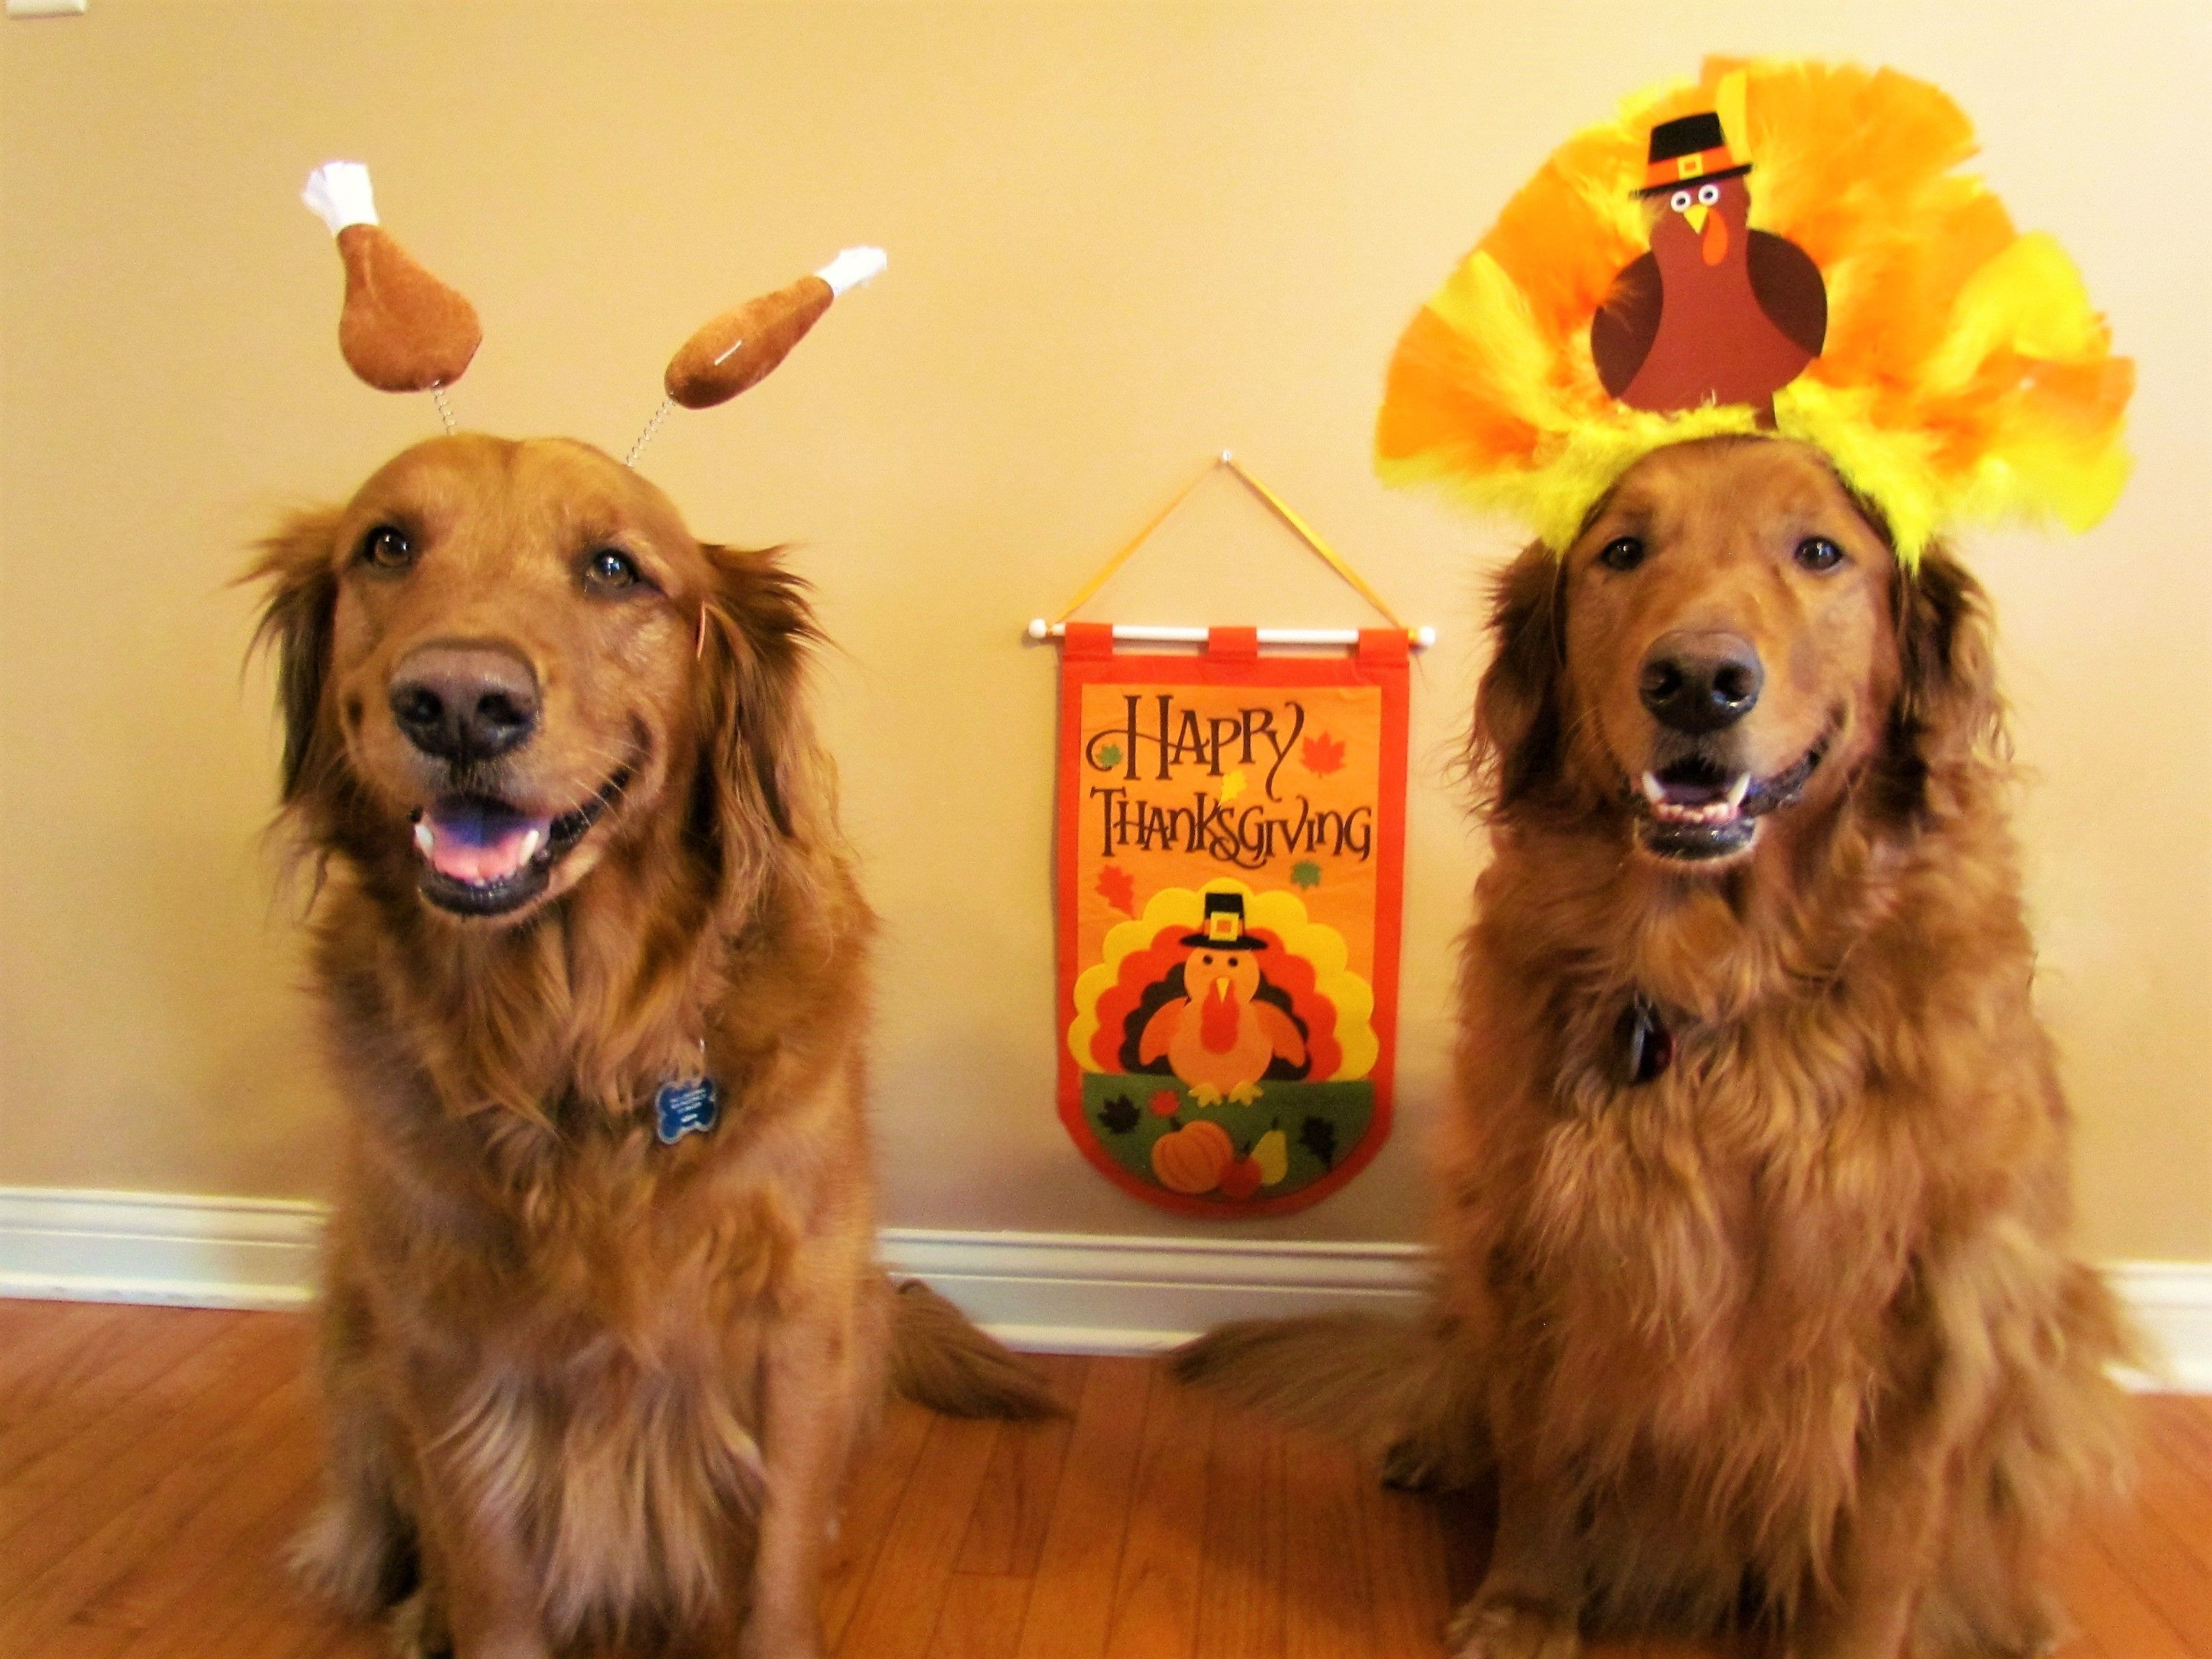 Happy Thanksgiving from Marley and Sadie! Dog love